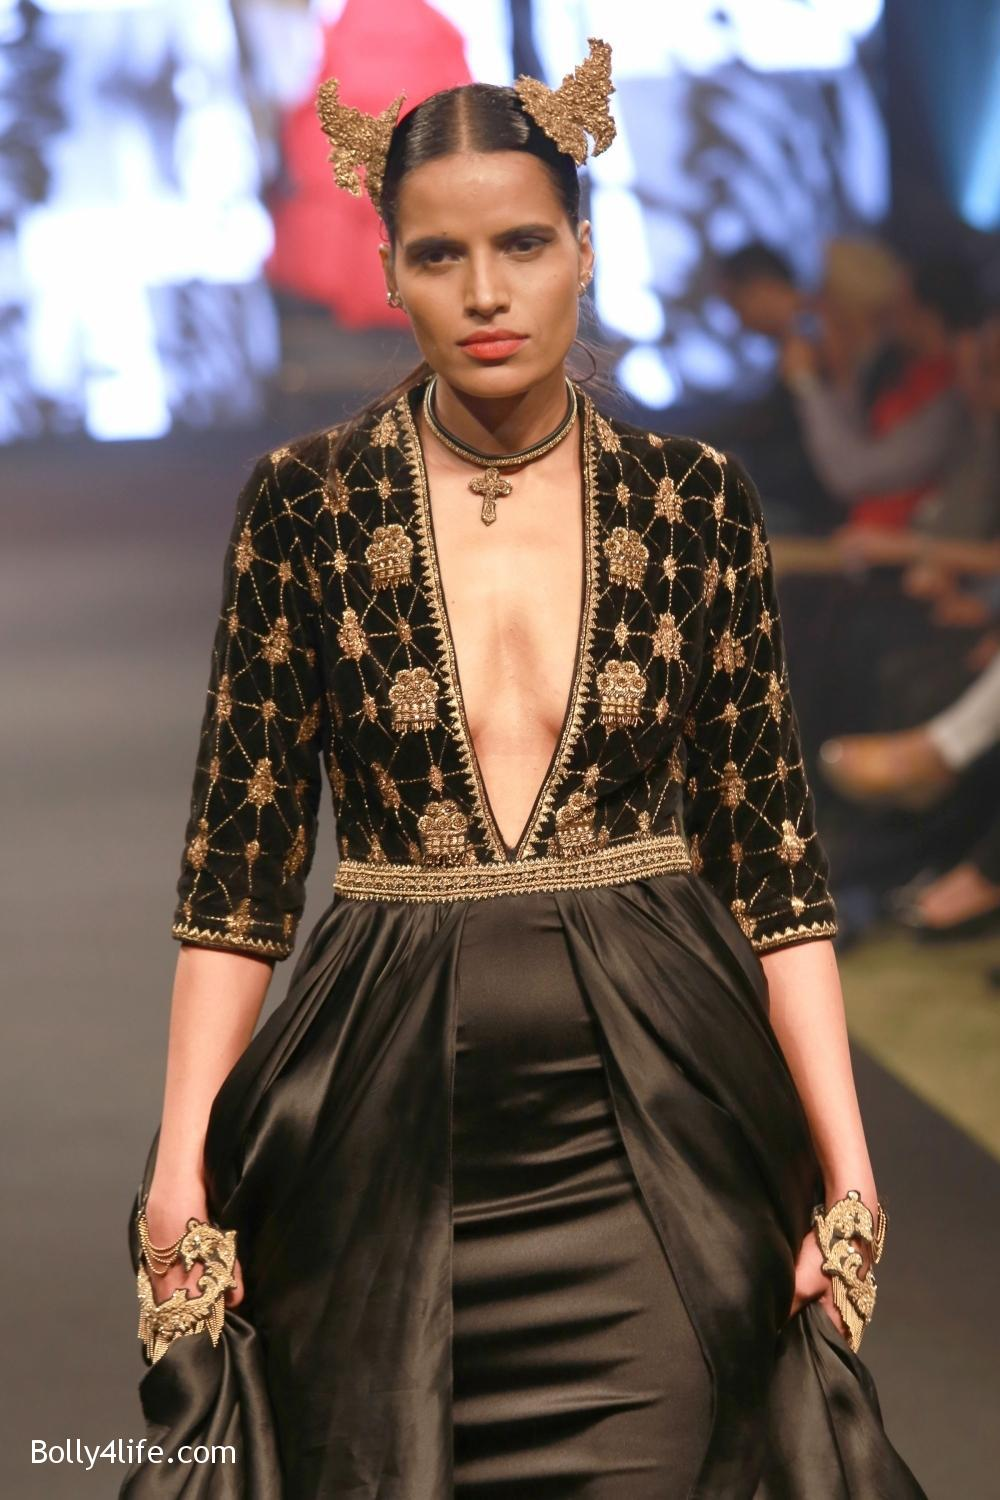 Sonam-Kapoor-walks-on-ramp-for-designers-Shantanu-and-Nikhils-show-during-the-Blenders-Pride-Fashion-Tour-2016-8.jpg